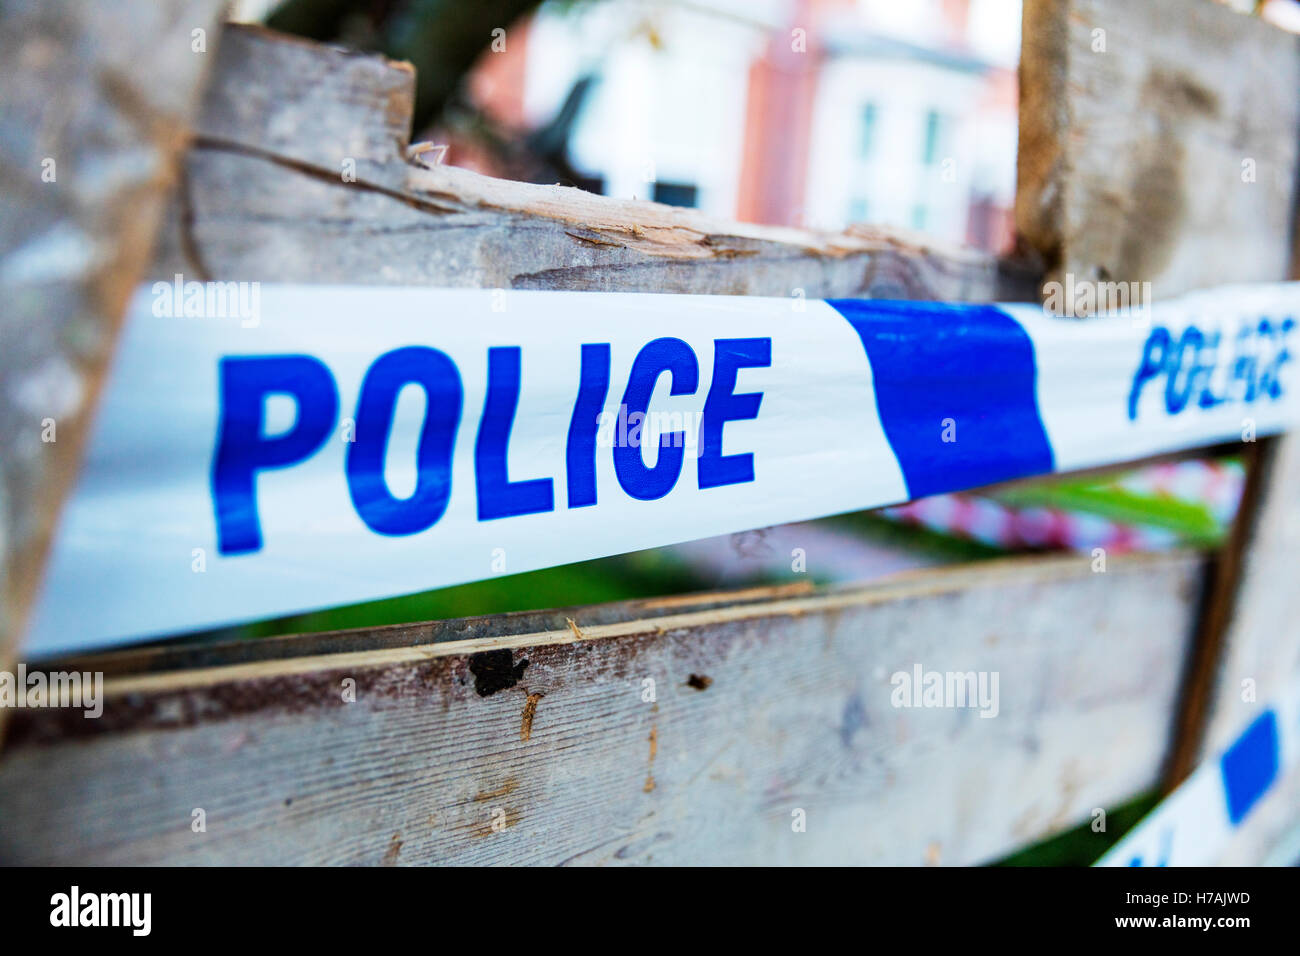 Police tape used to let people know police are aware of incident keep out police sign UK England GB - Stock Image